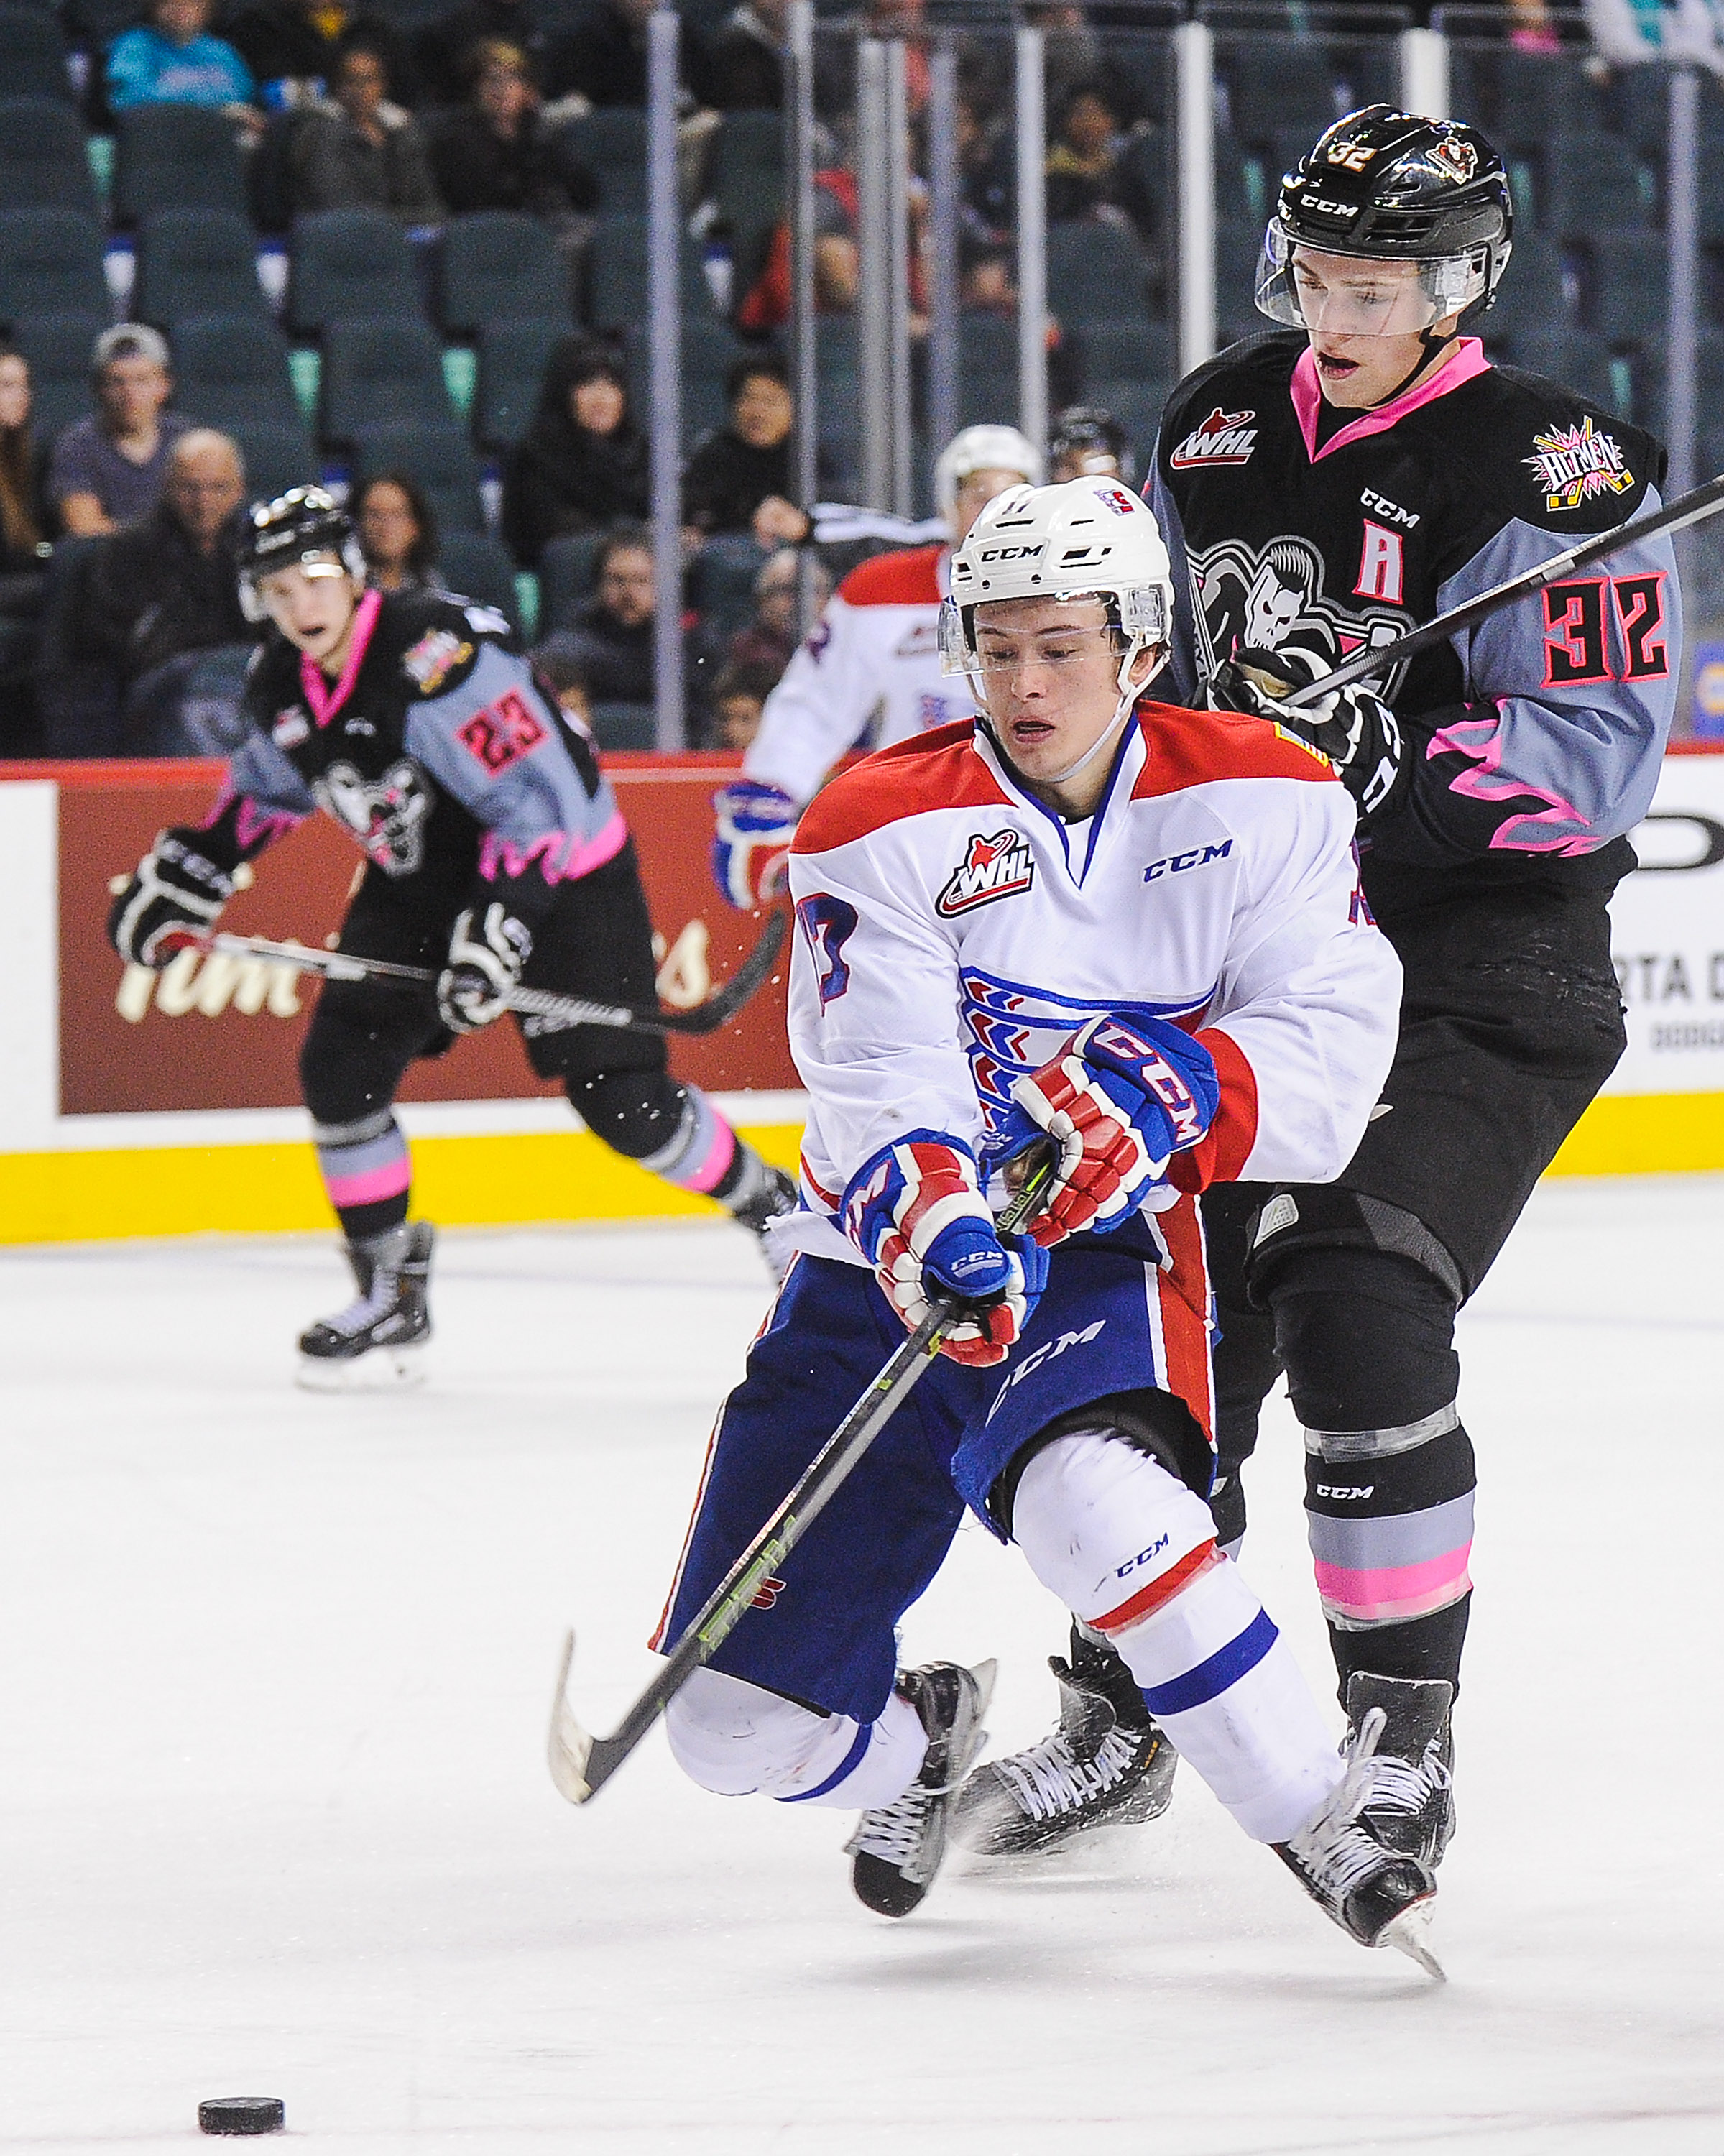 Kailer Yamamoto leads the way for the Chiefs and coudl very well contend for the WHL scoring title